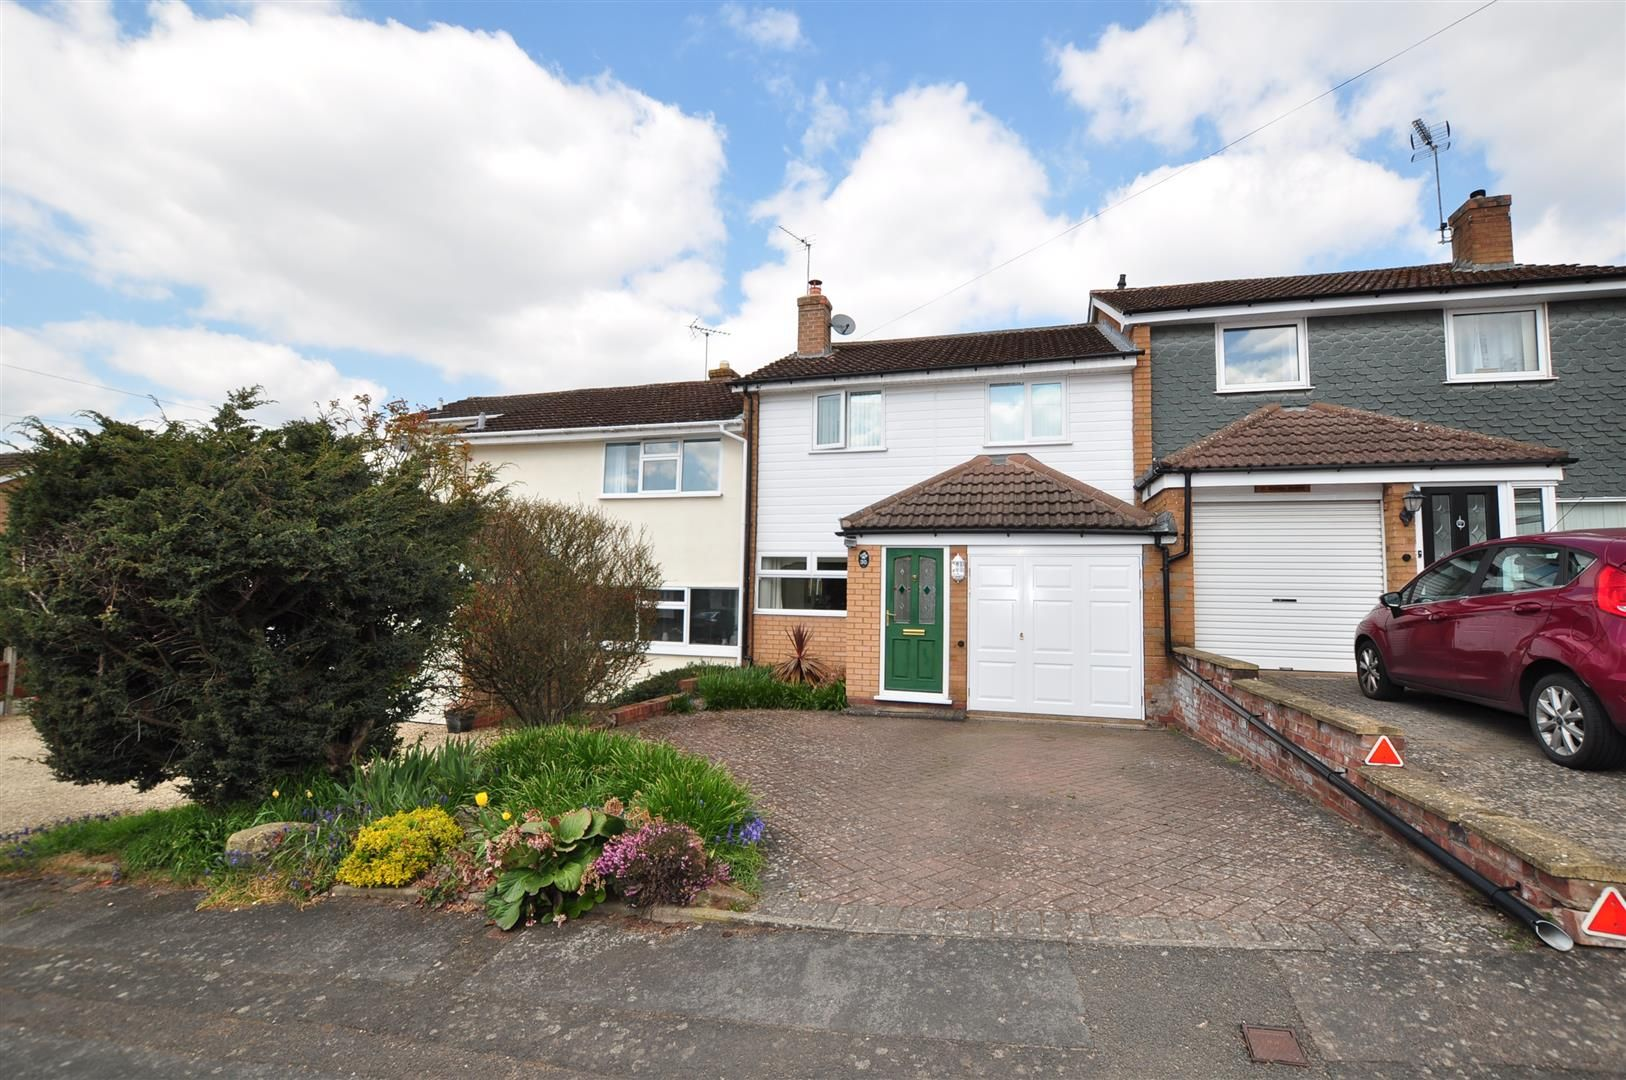 3 bed house for sale in Hagley  - Property Image 15